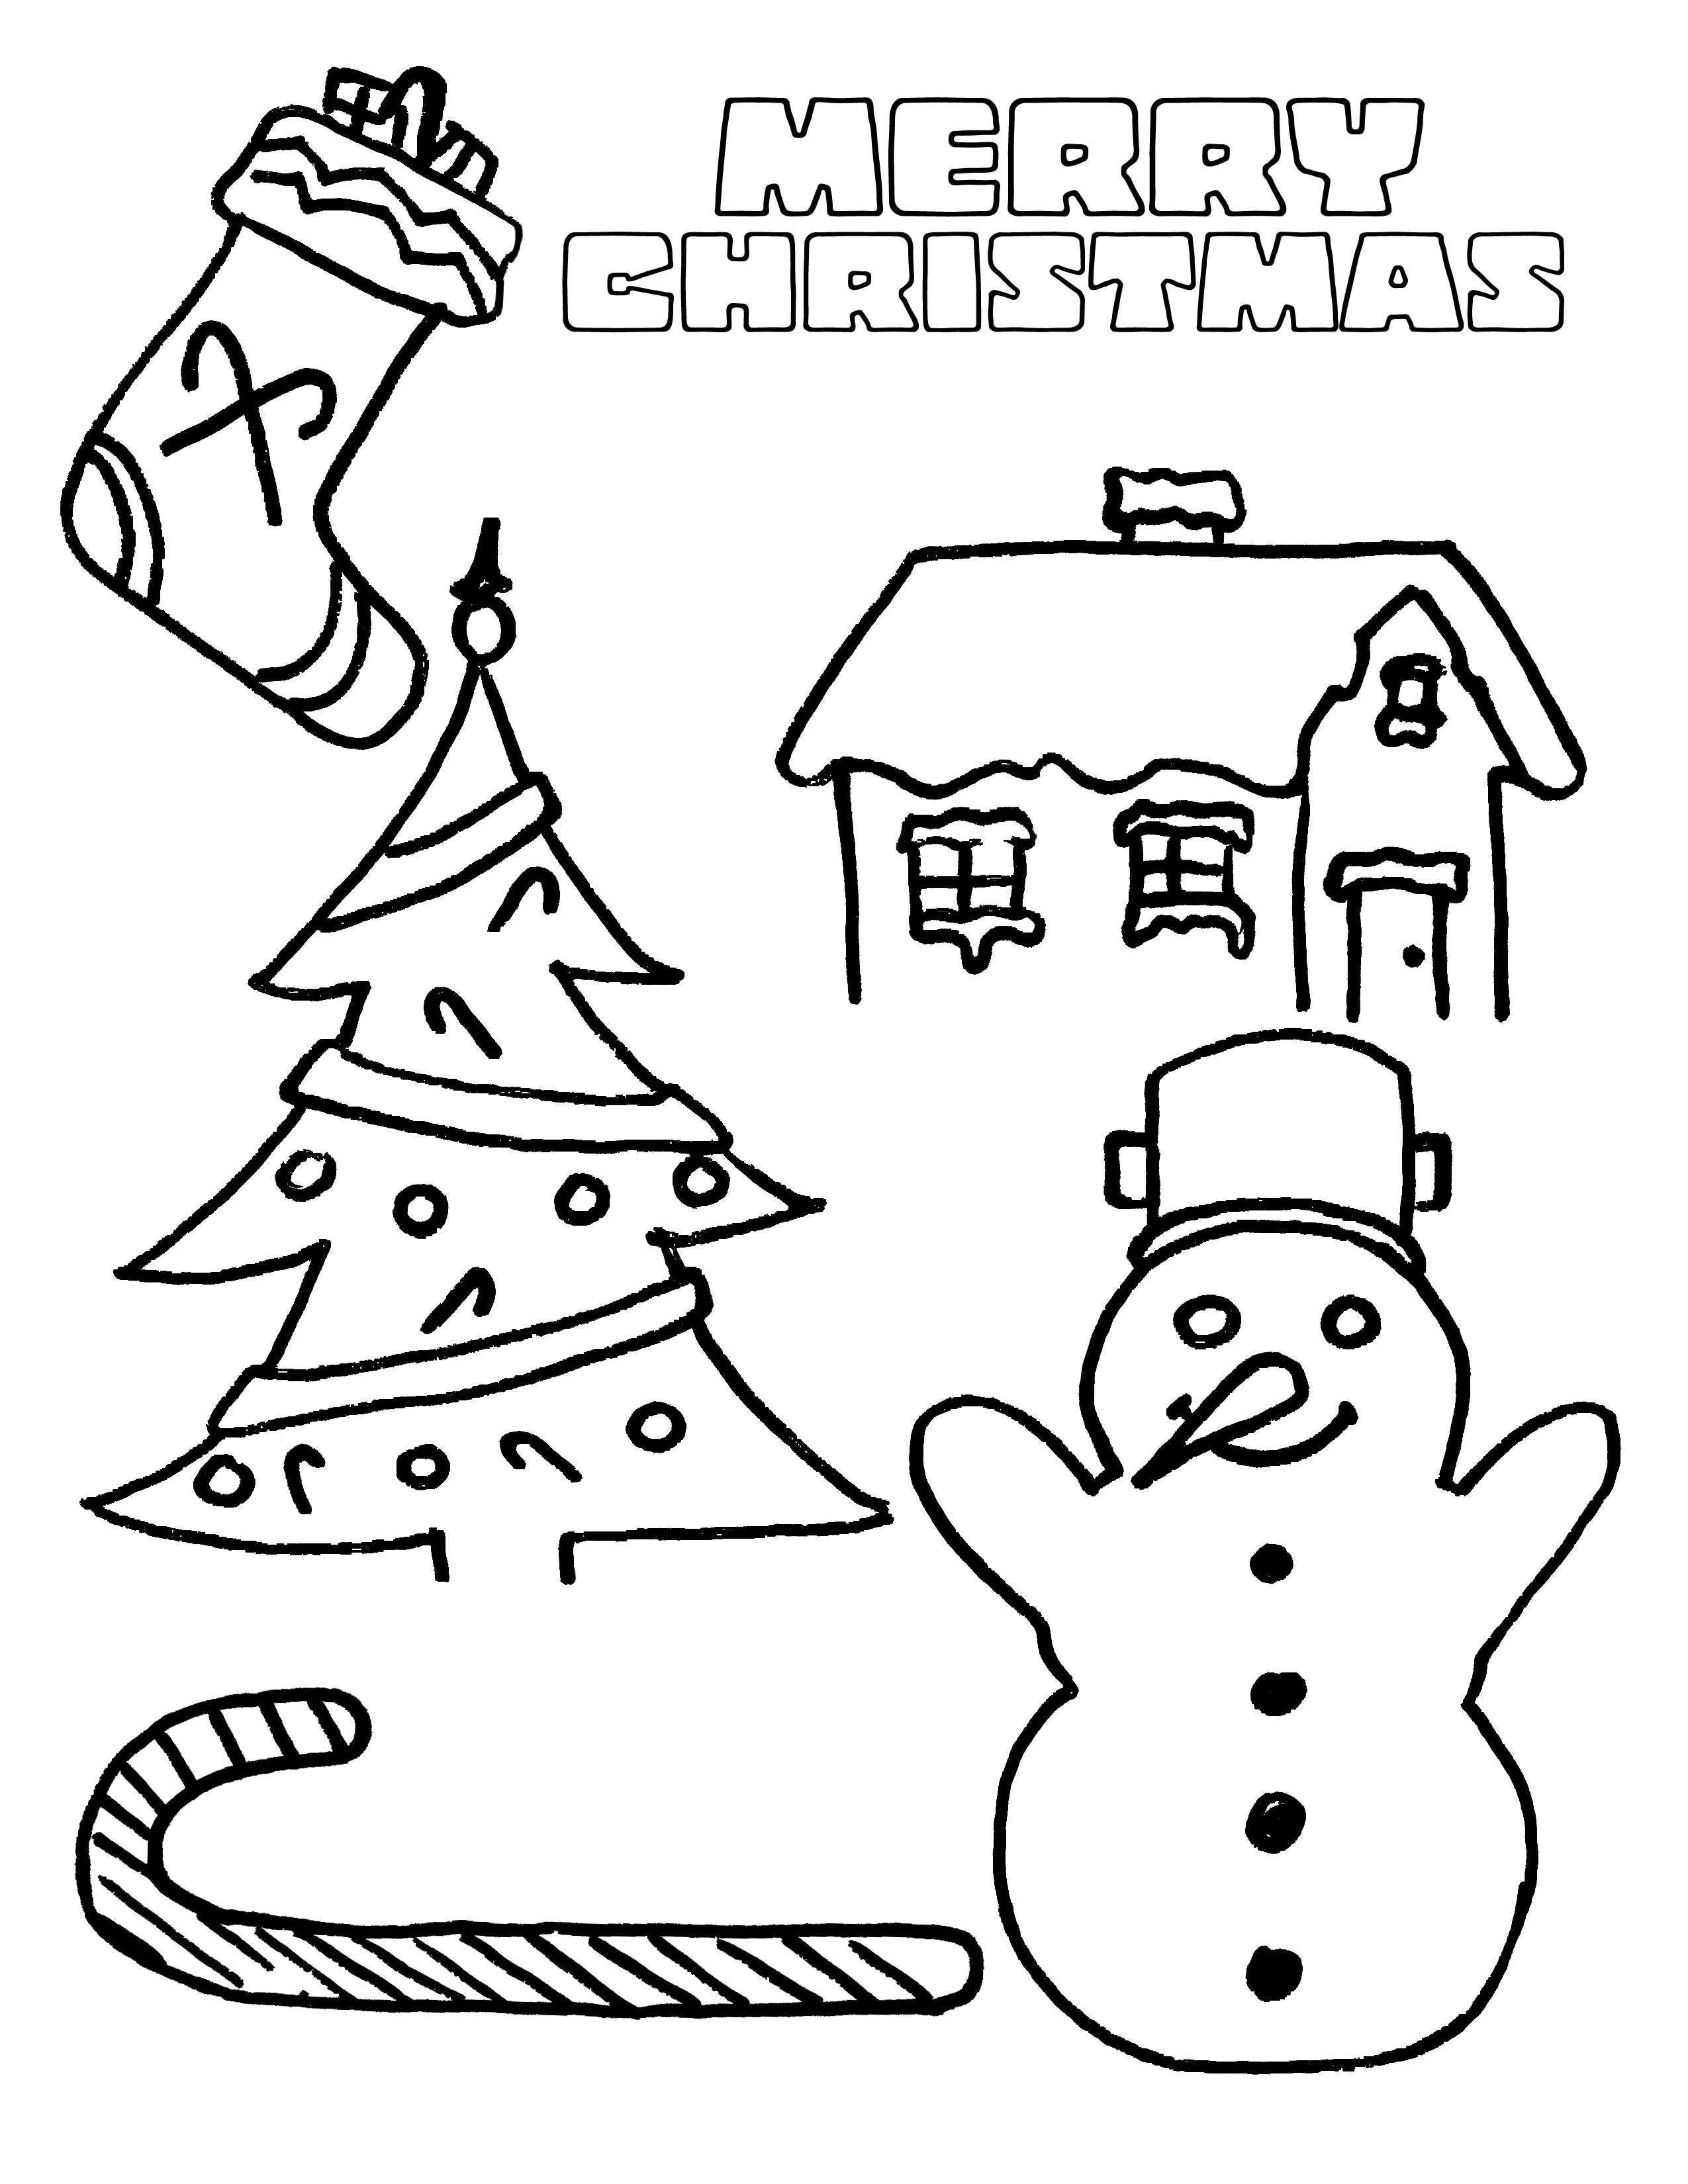 Free Christmas Coloring Sheets For Kids  Party Simplicity free Christmas coloring page for kids